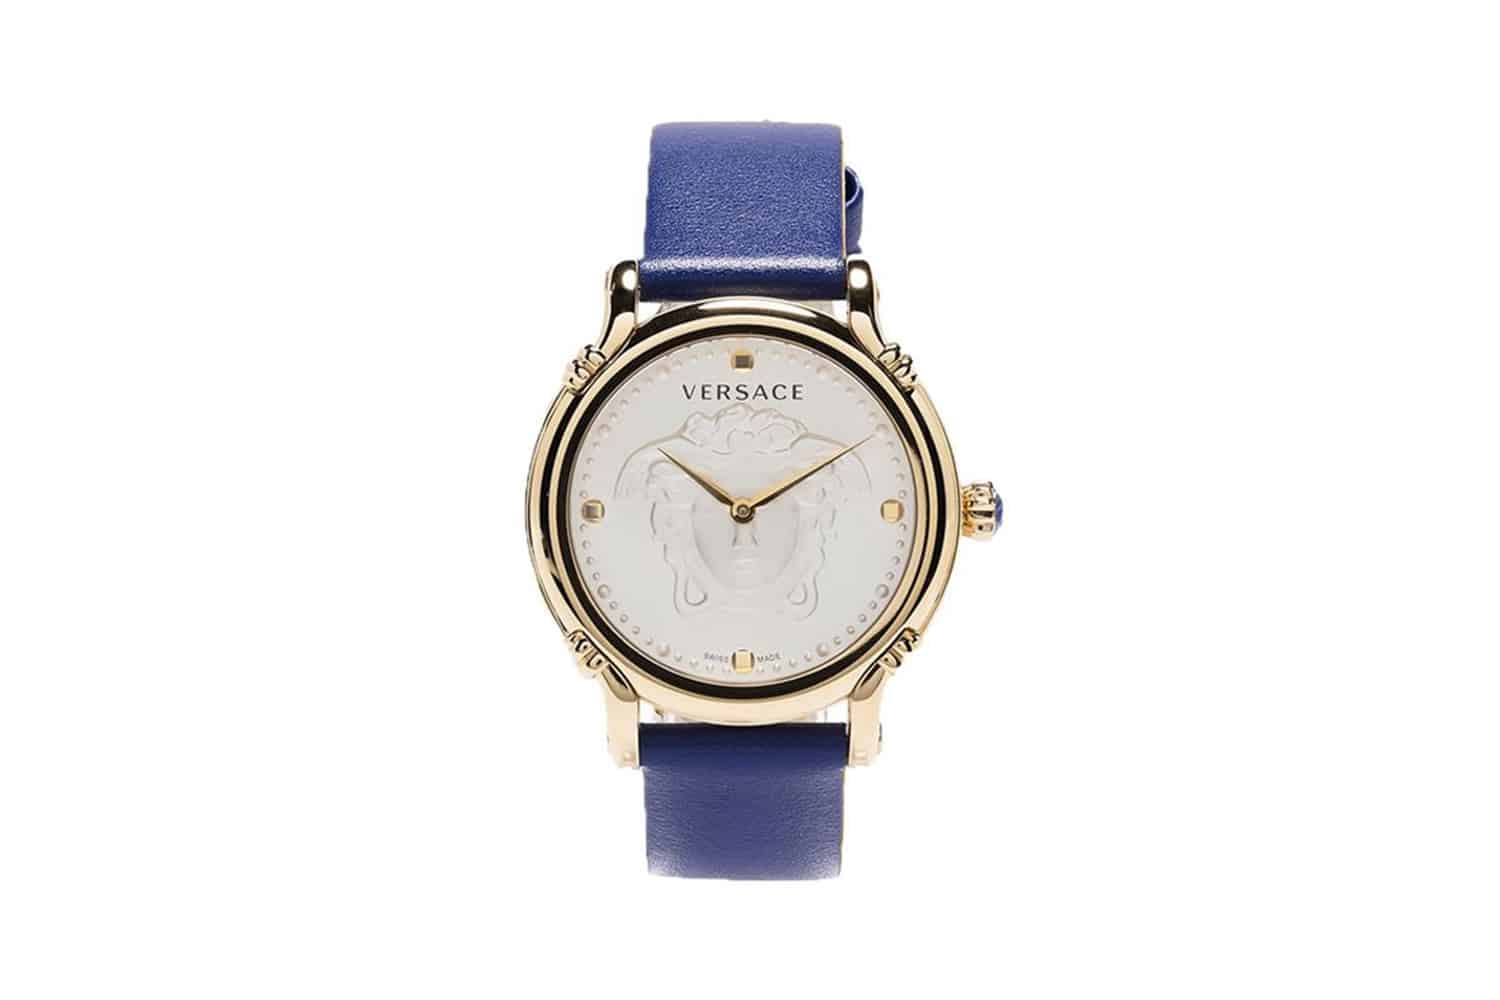 Versace-Analogue-White-Dial-34mm